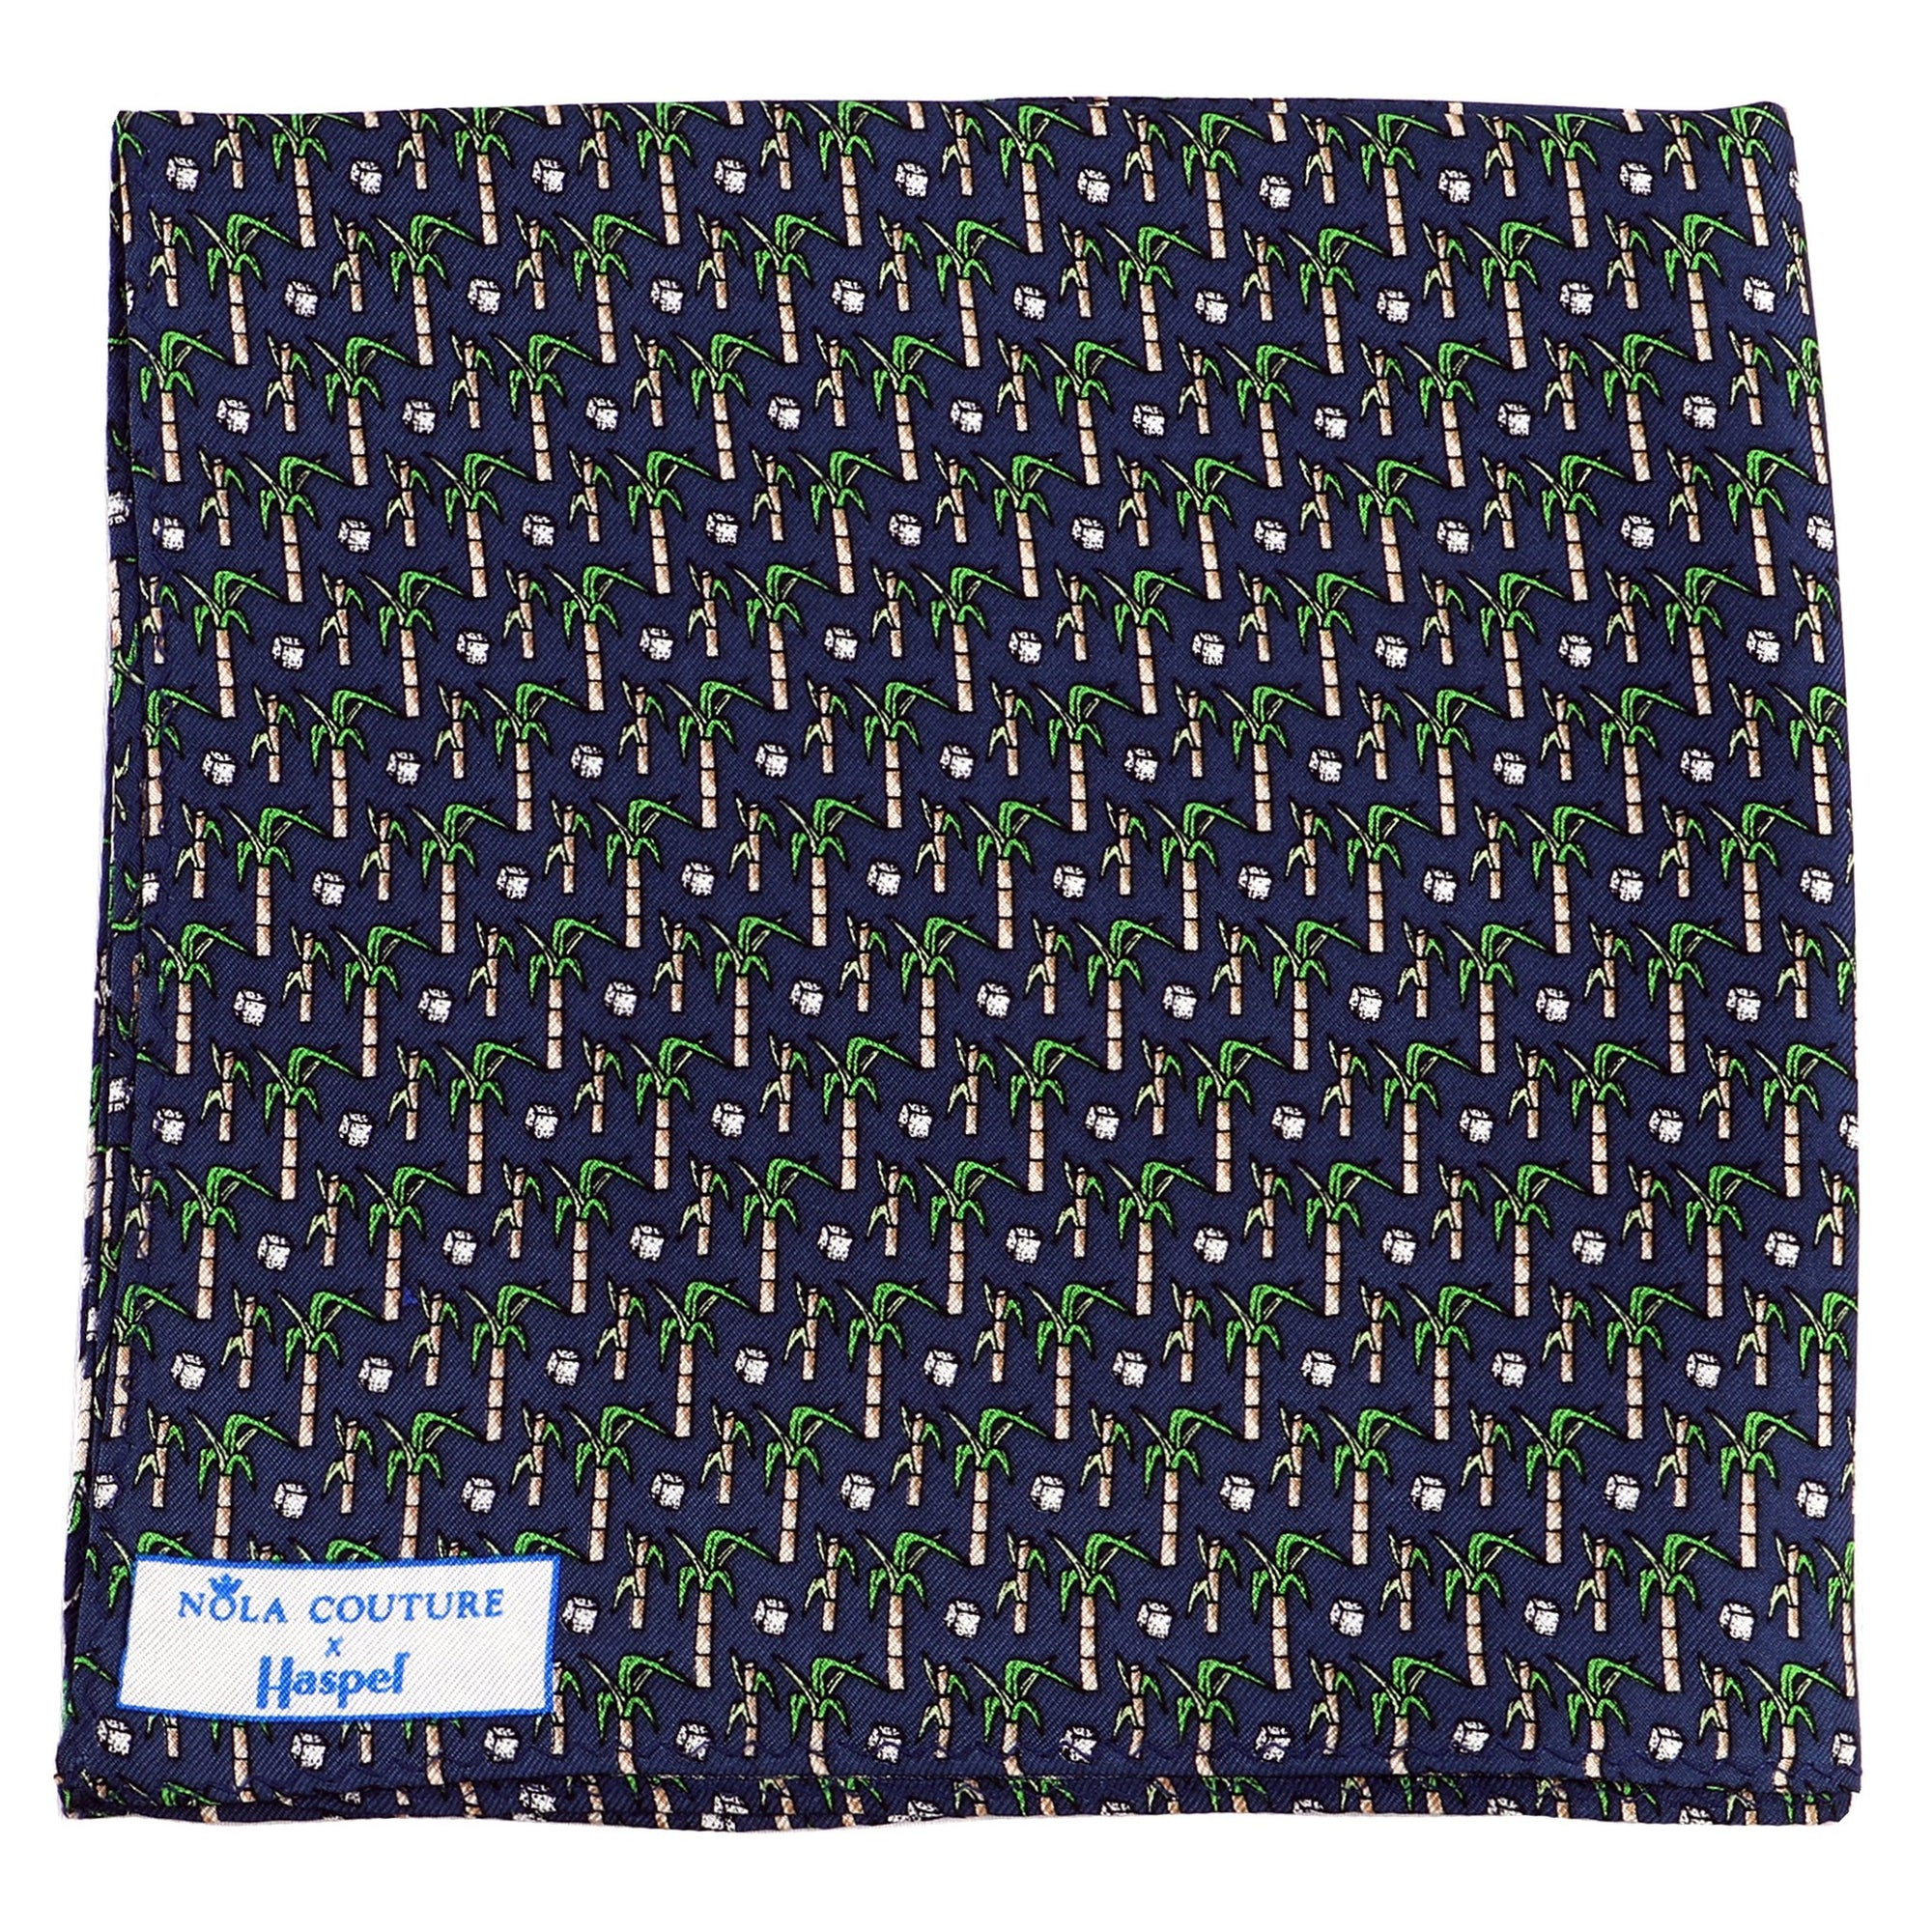 Limited Edition NOLA Couture X Haspel Navy Sugarcane Print Pocket Square - O/S